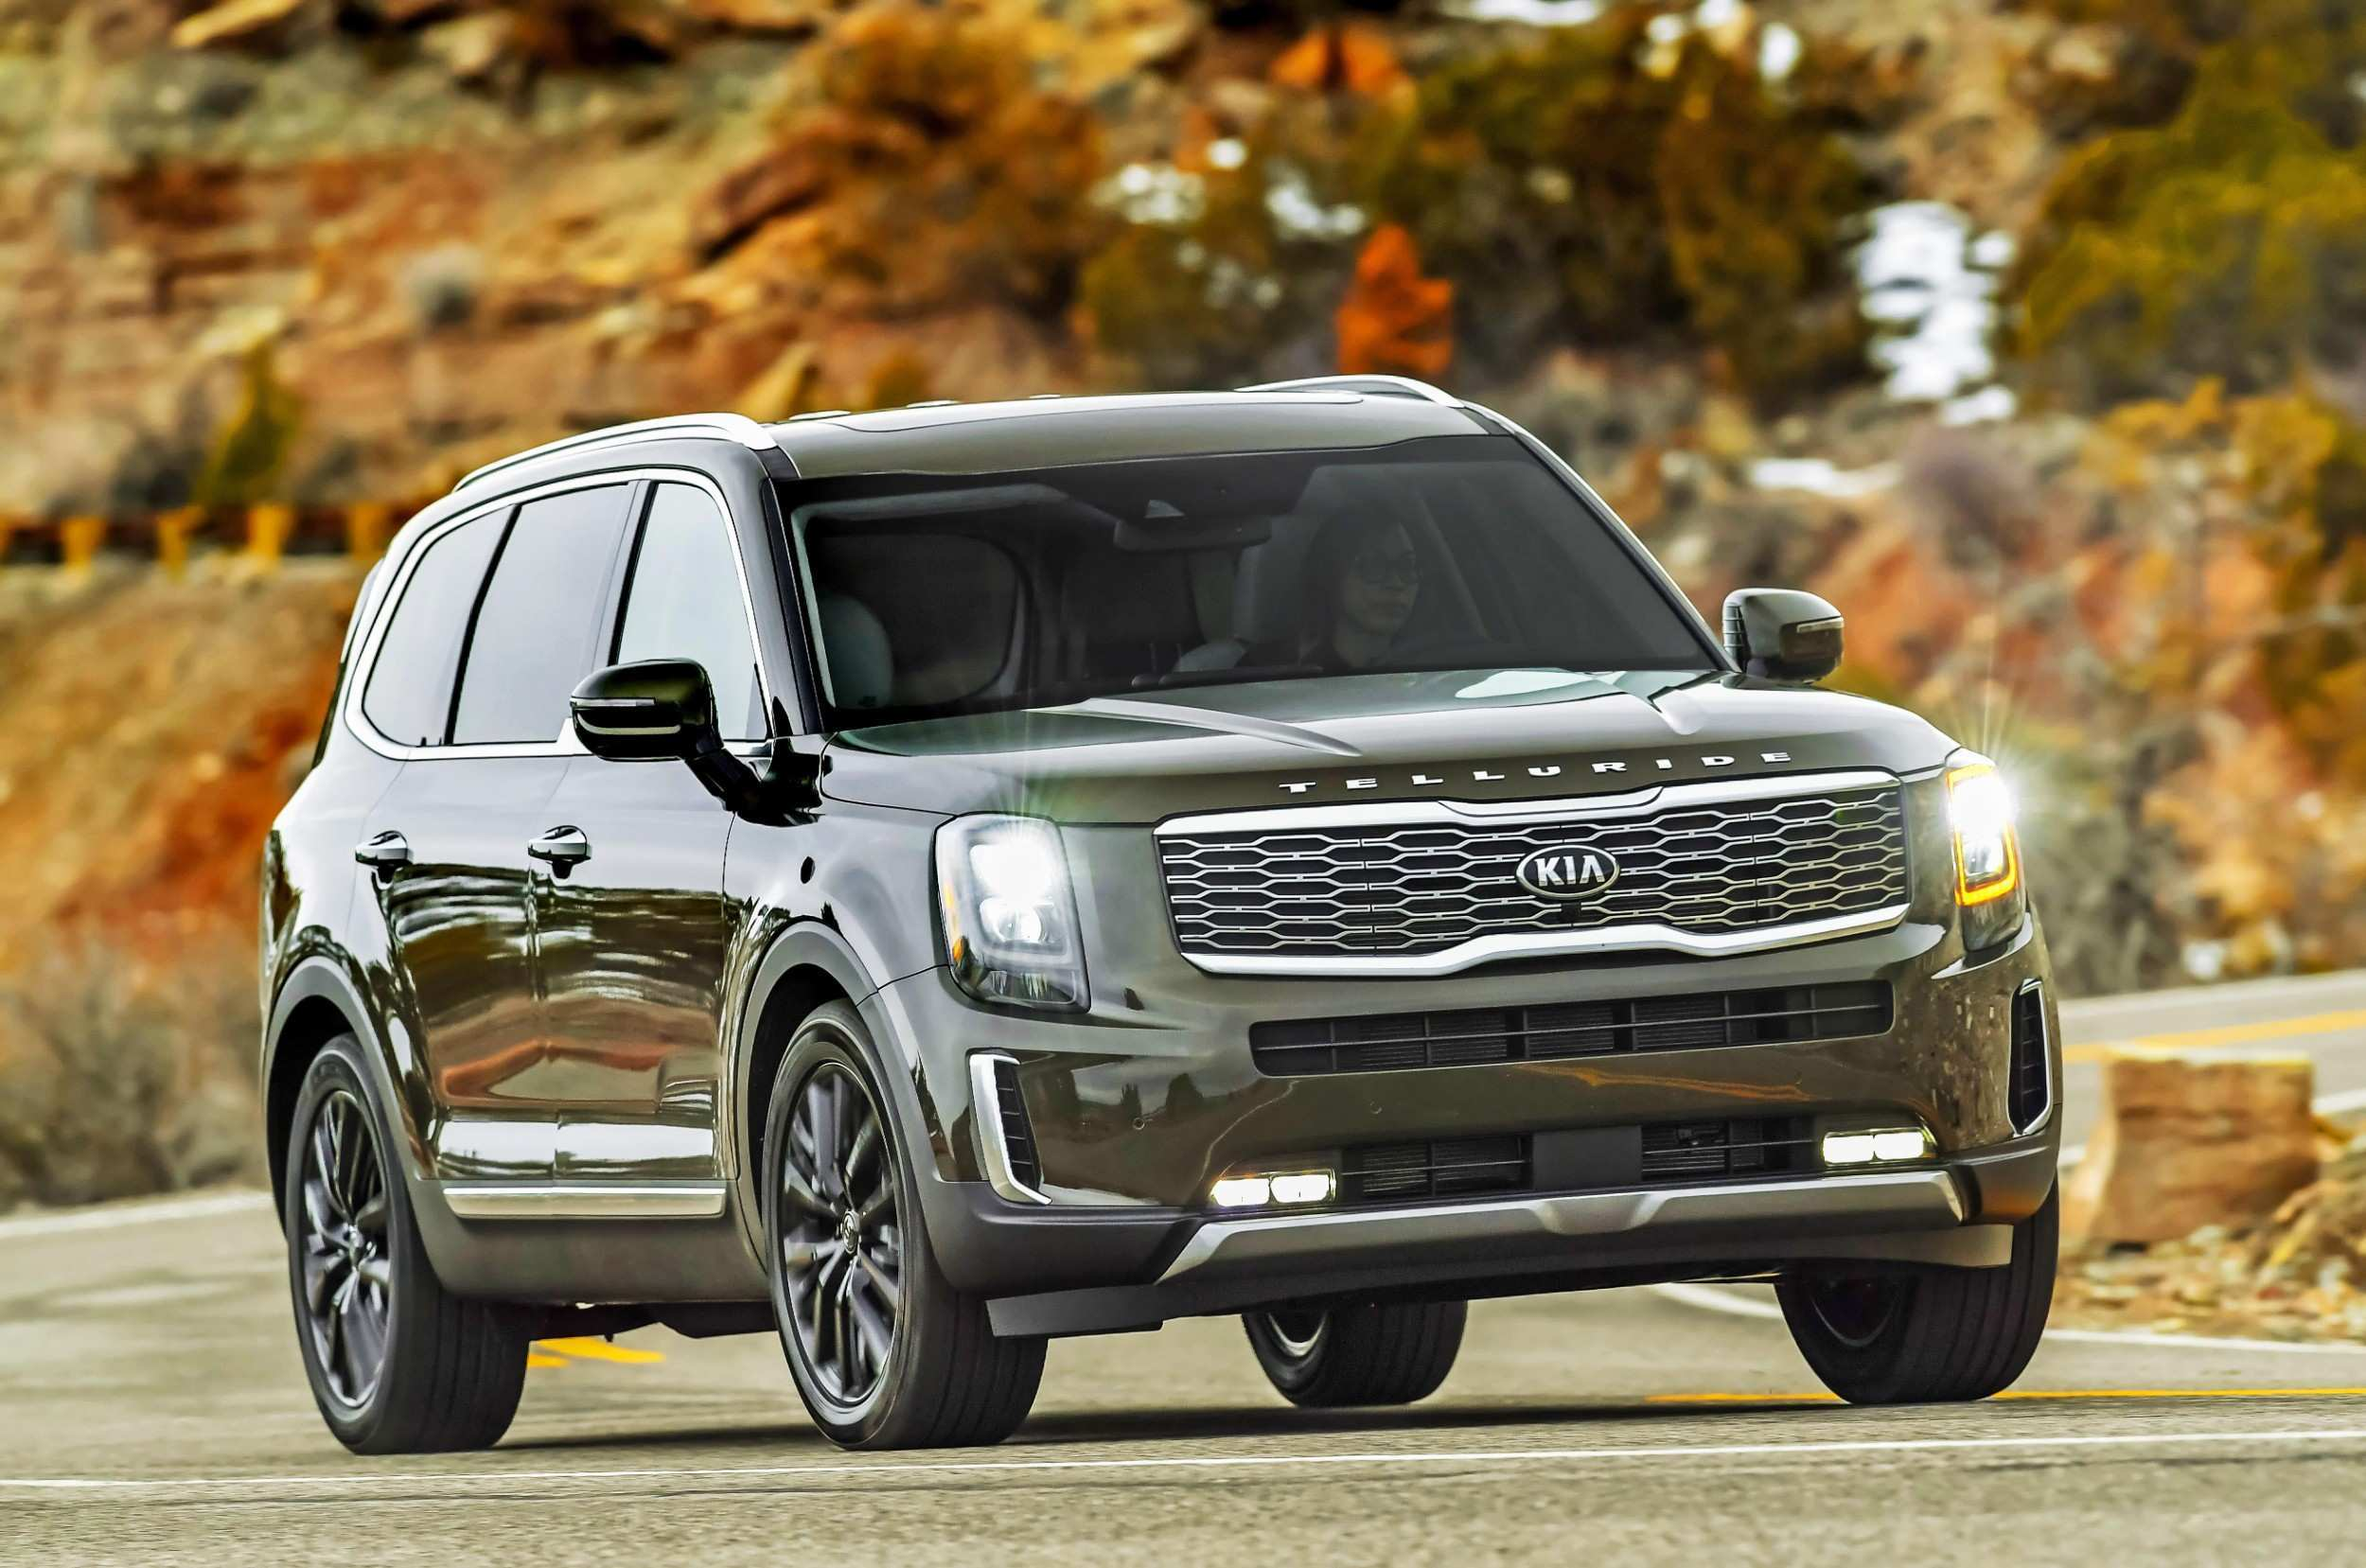 80 All New Kia New Suv 2019 Images